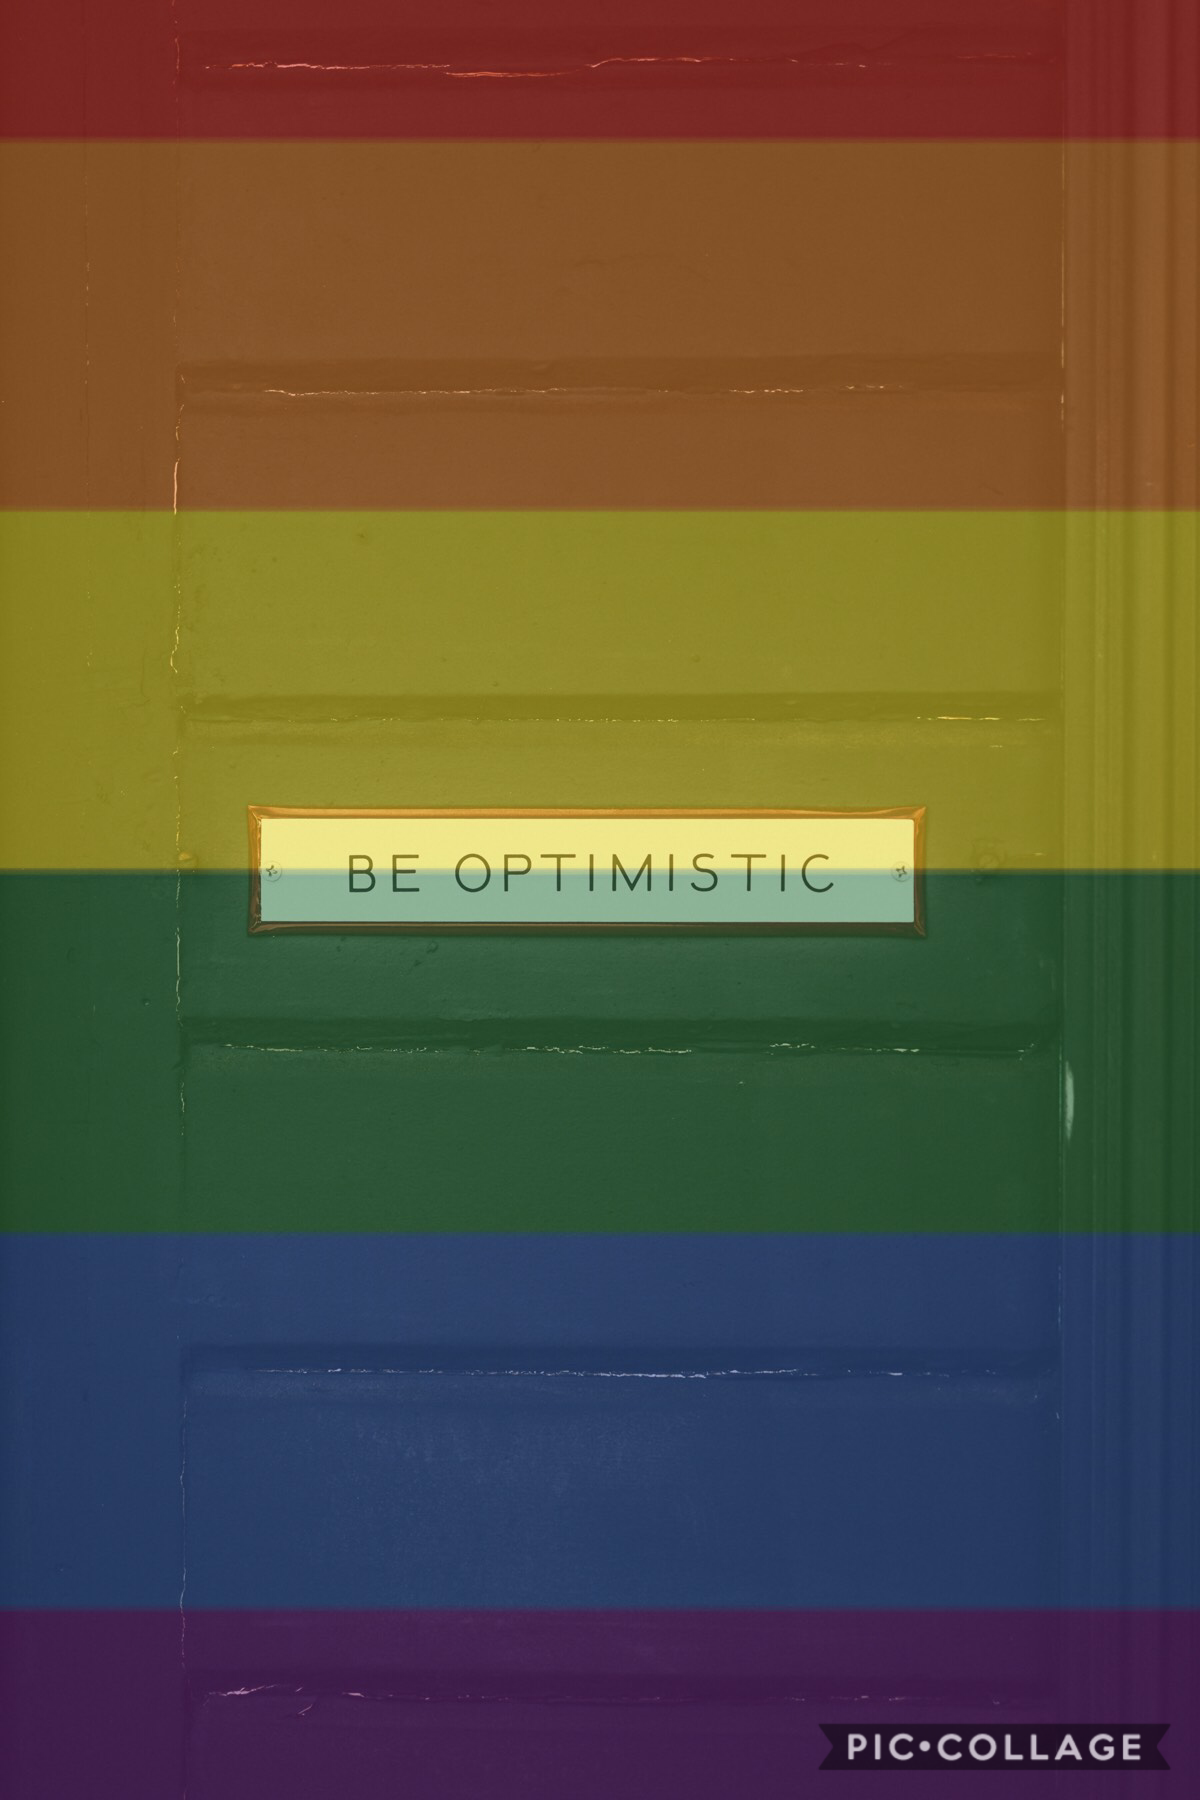 i've found the key to living happier or better is to have a better mindset. if you keep thinking the same negative thoughts over and over, you won't make progress and frankly, aren't putting any effort. so be optimistic! hope! things will always get bette